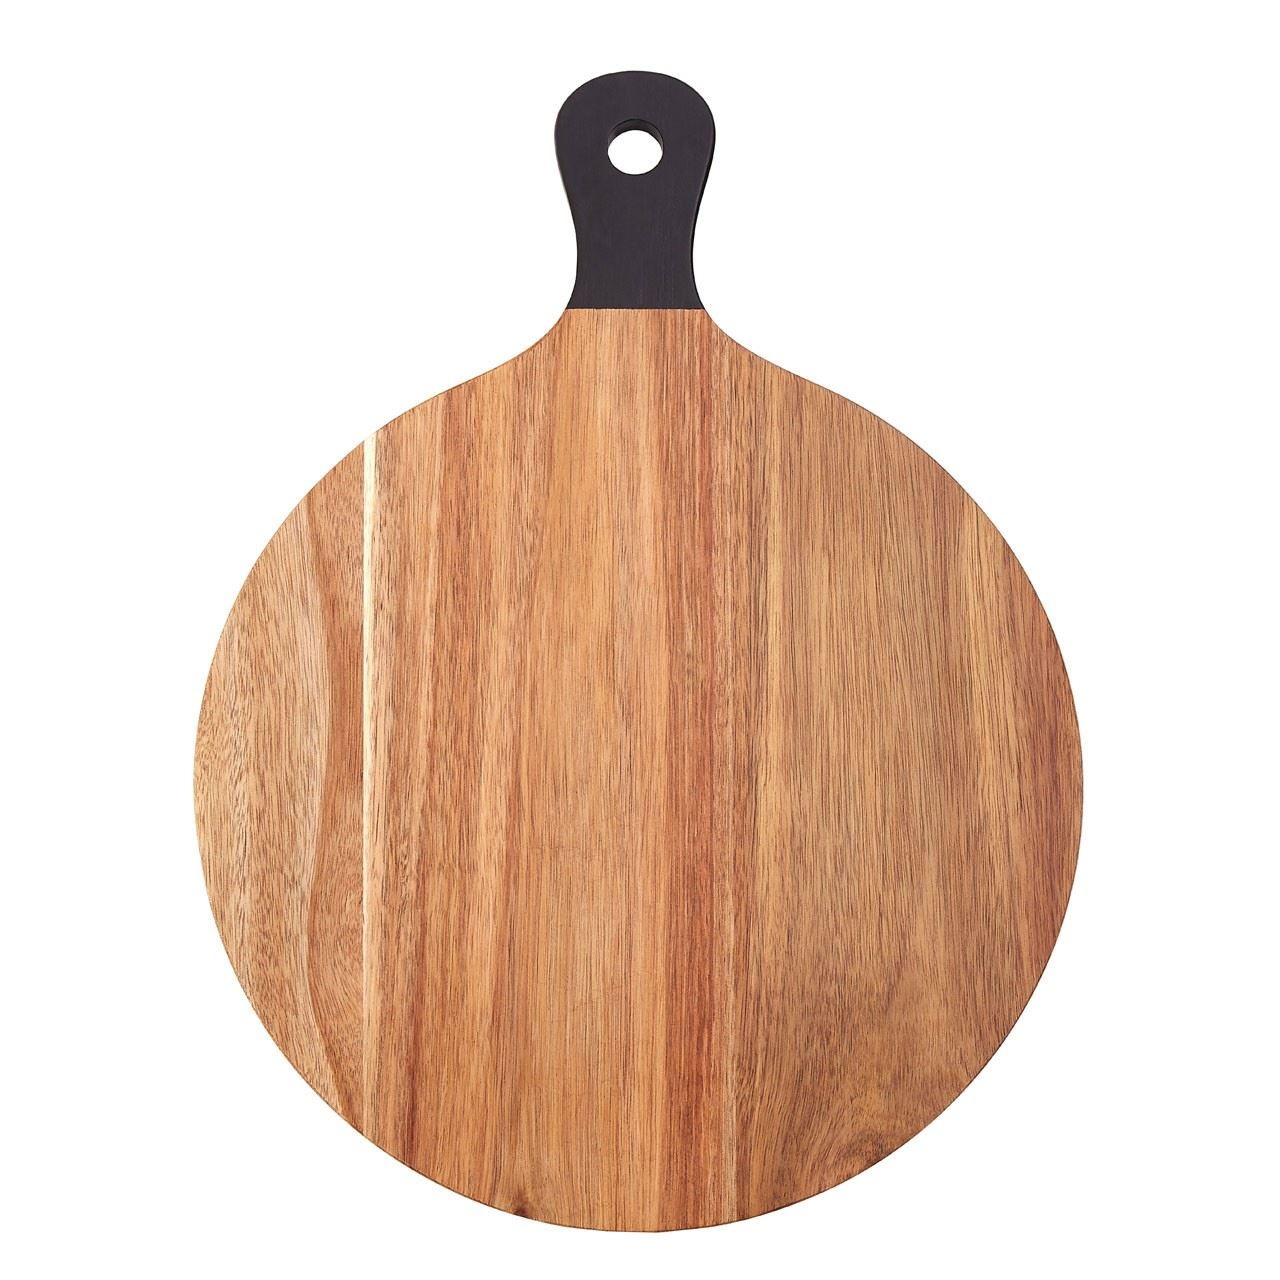 Chopping-Boards-Wooden-Cutting-Serving-Naturally-Antibacterial thumbnail 12